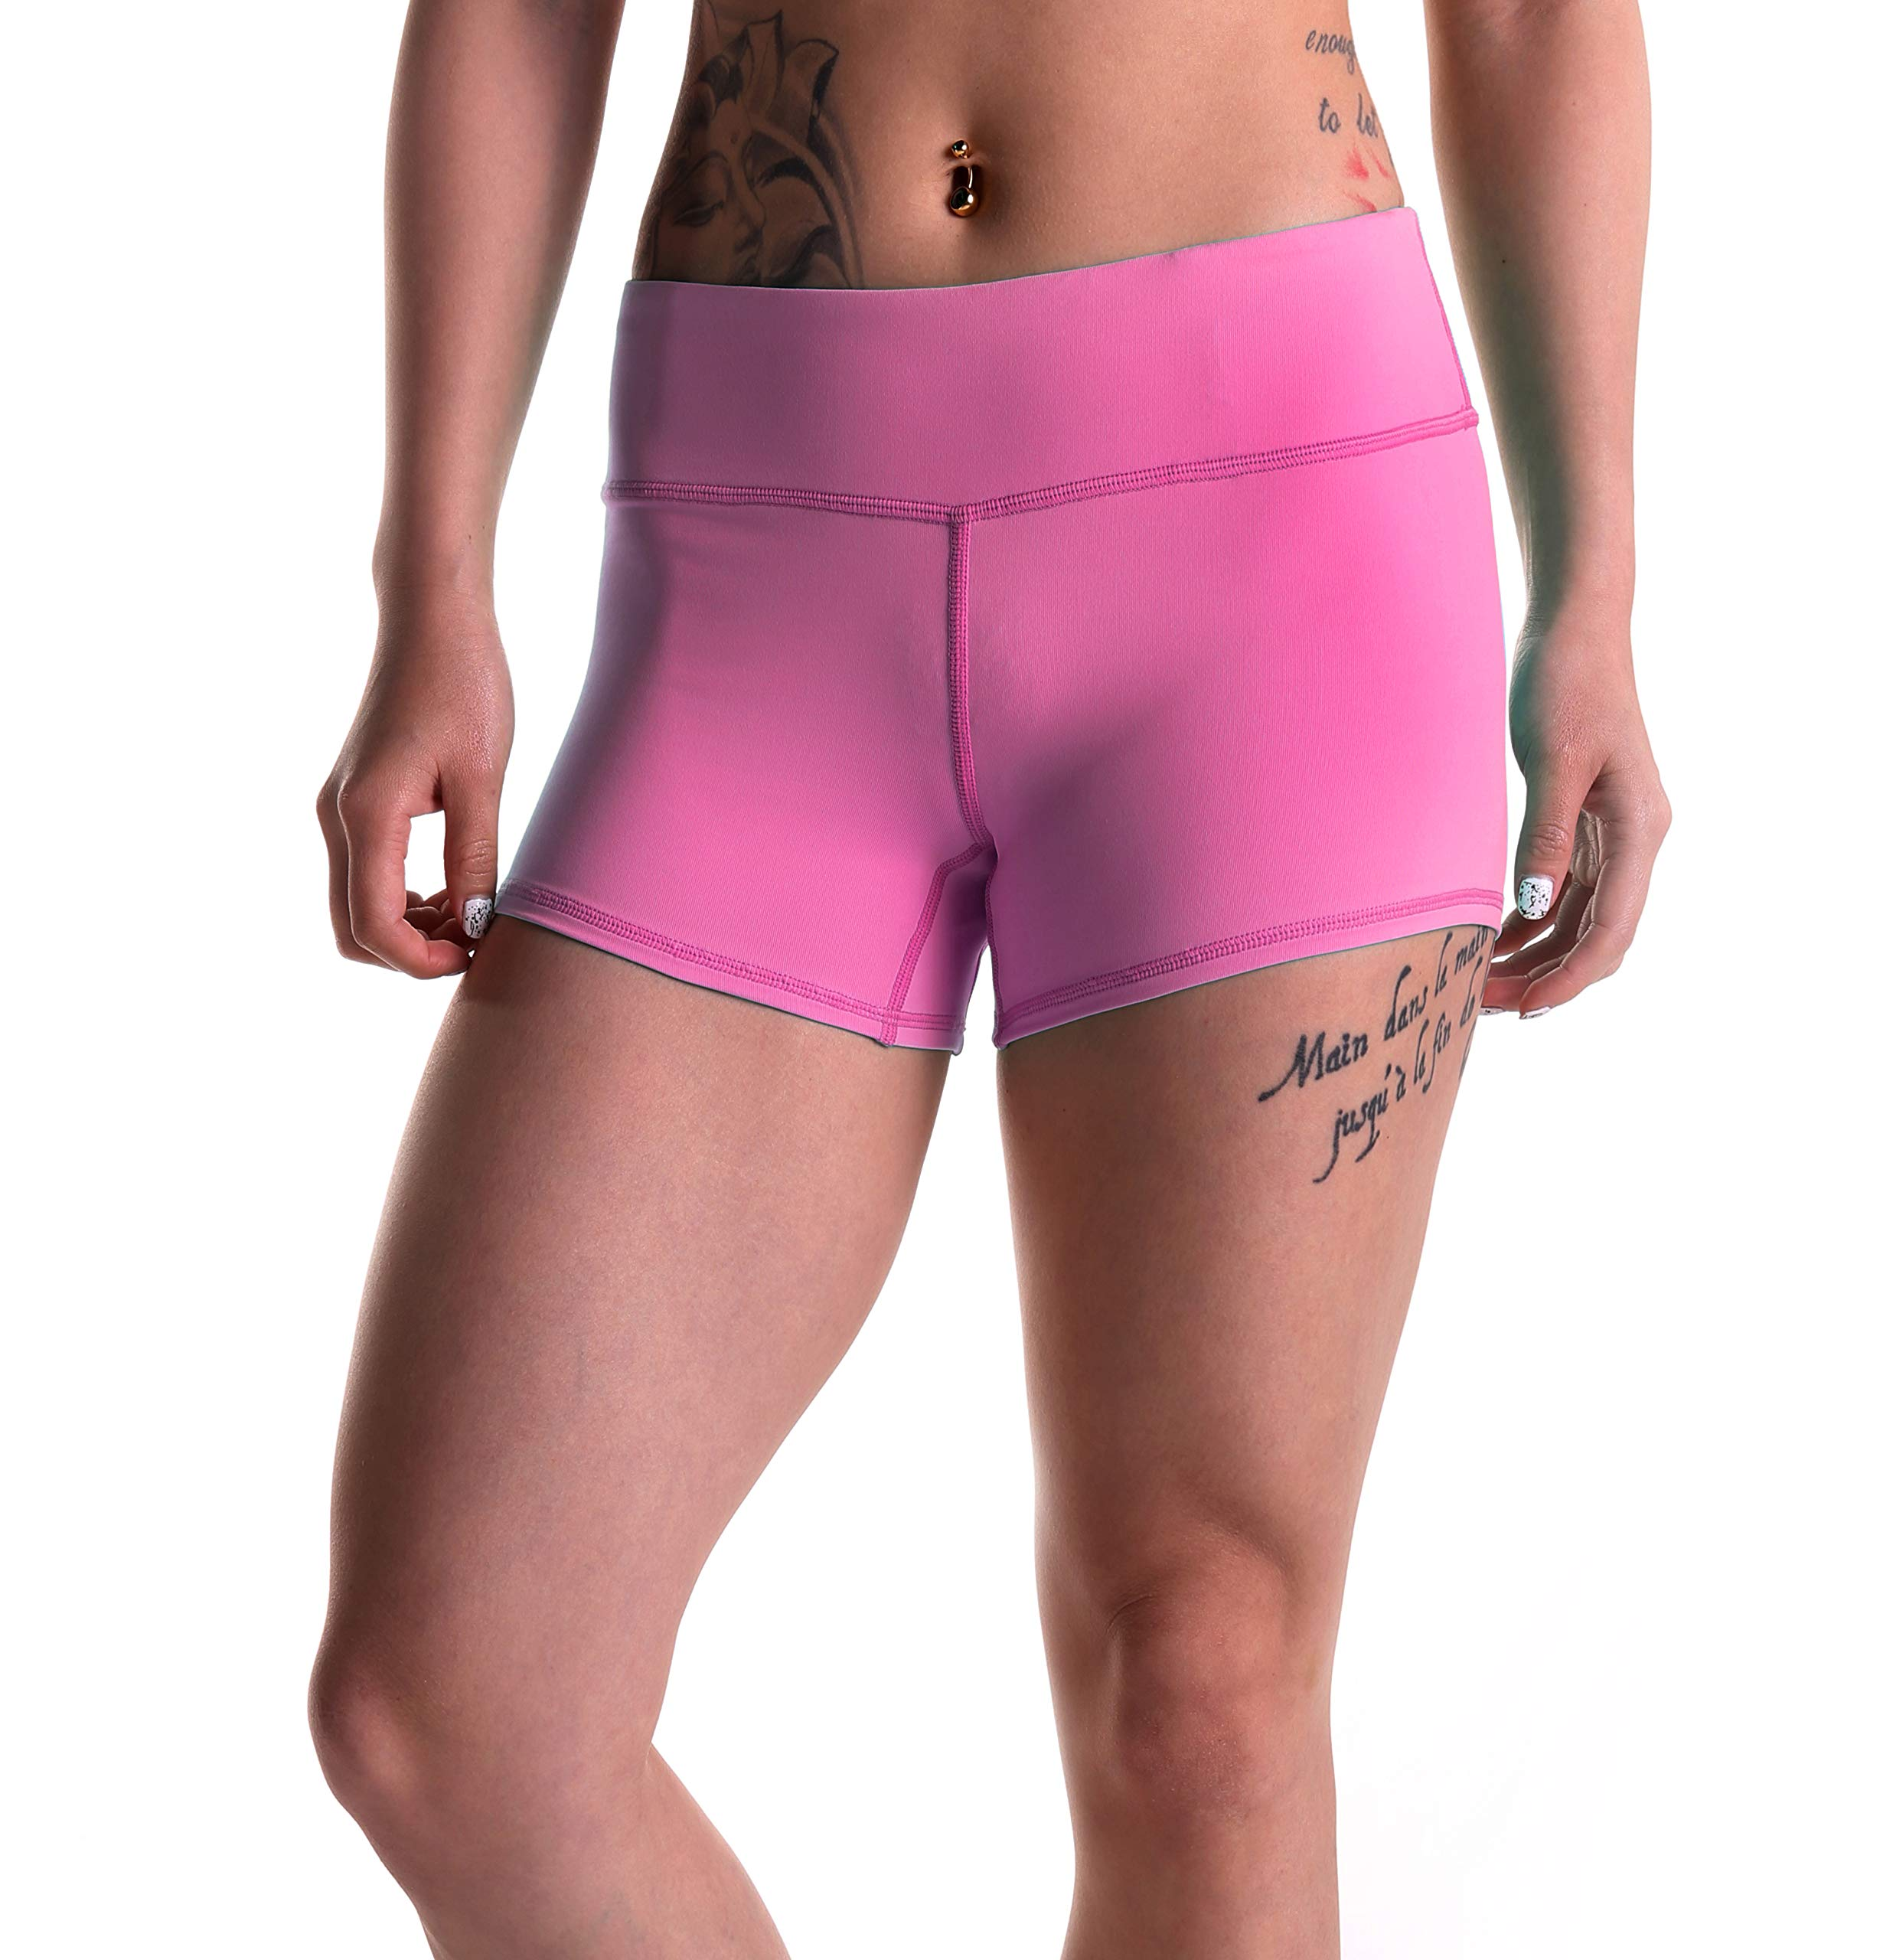 Tough Mode Womens 3'' WOD Athletic Shorts Yoga Volleyball Crossfit Running MMA Active Booty Black Red Blue Green (Small, Pink) by Tough Mode